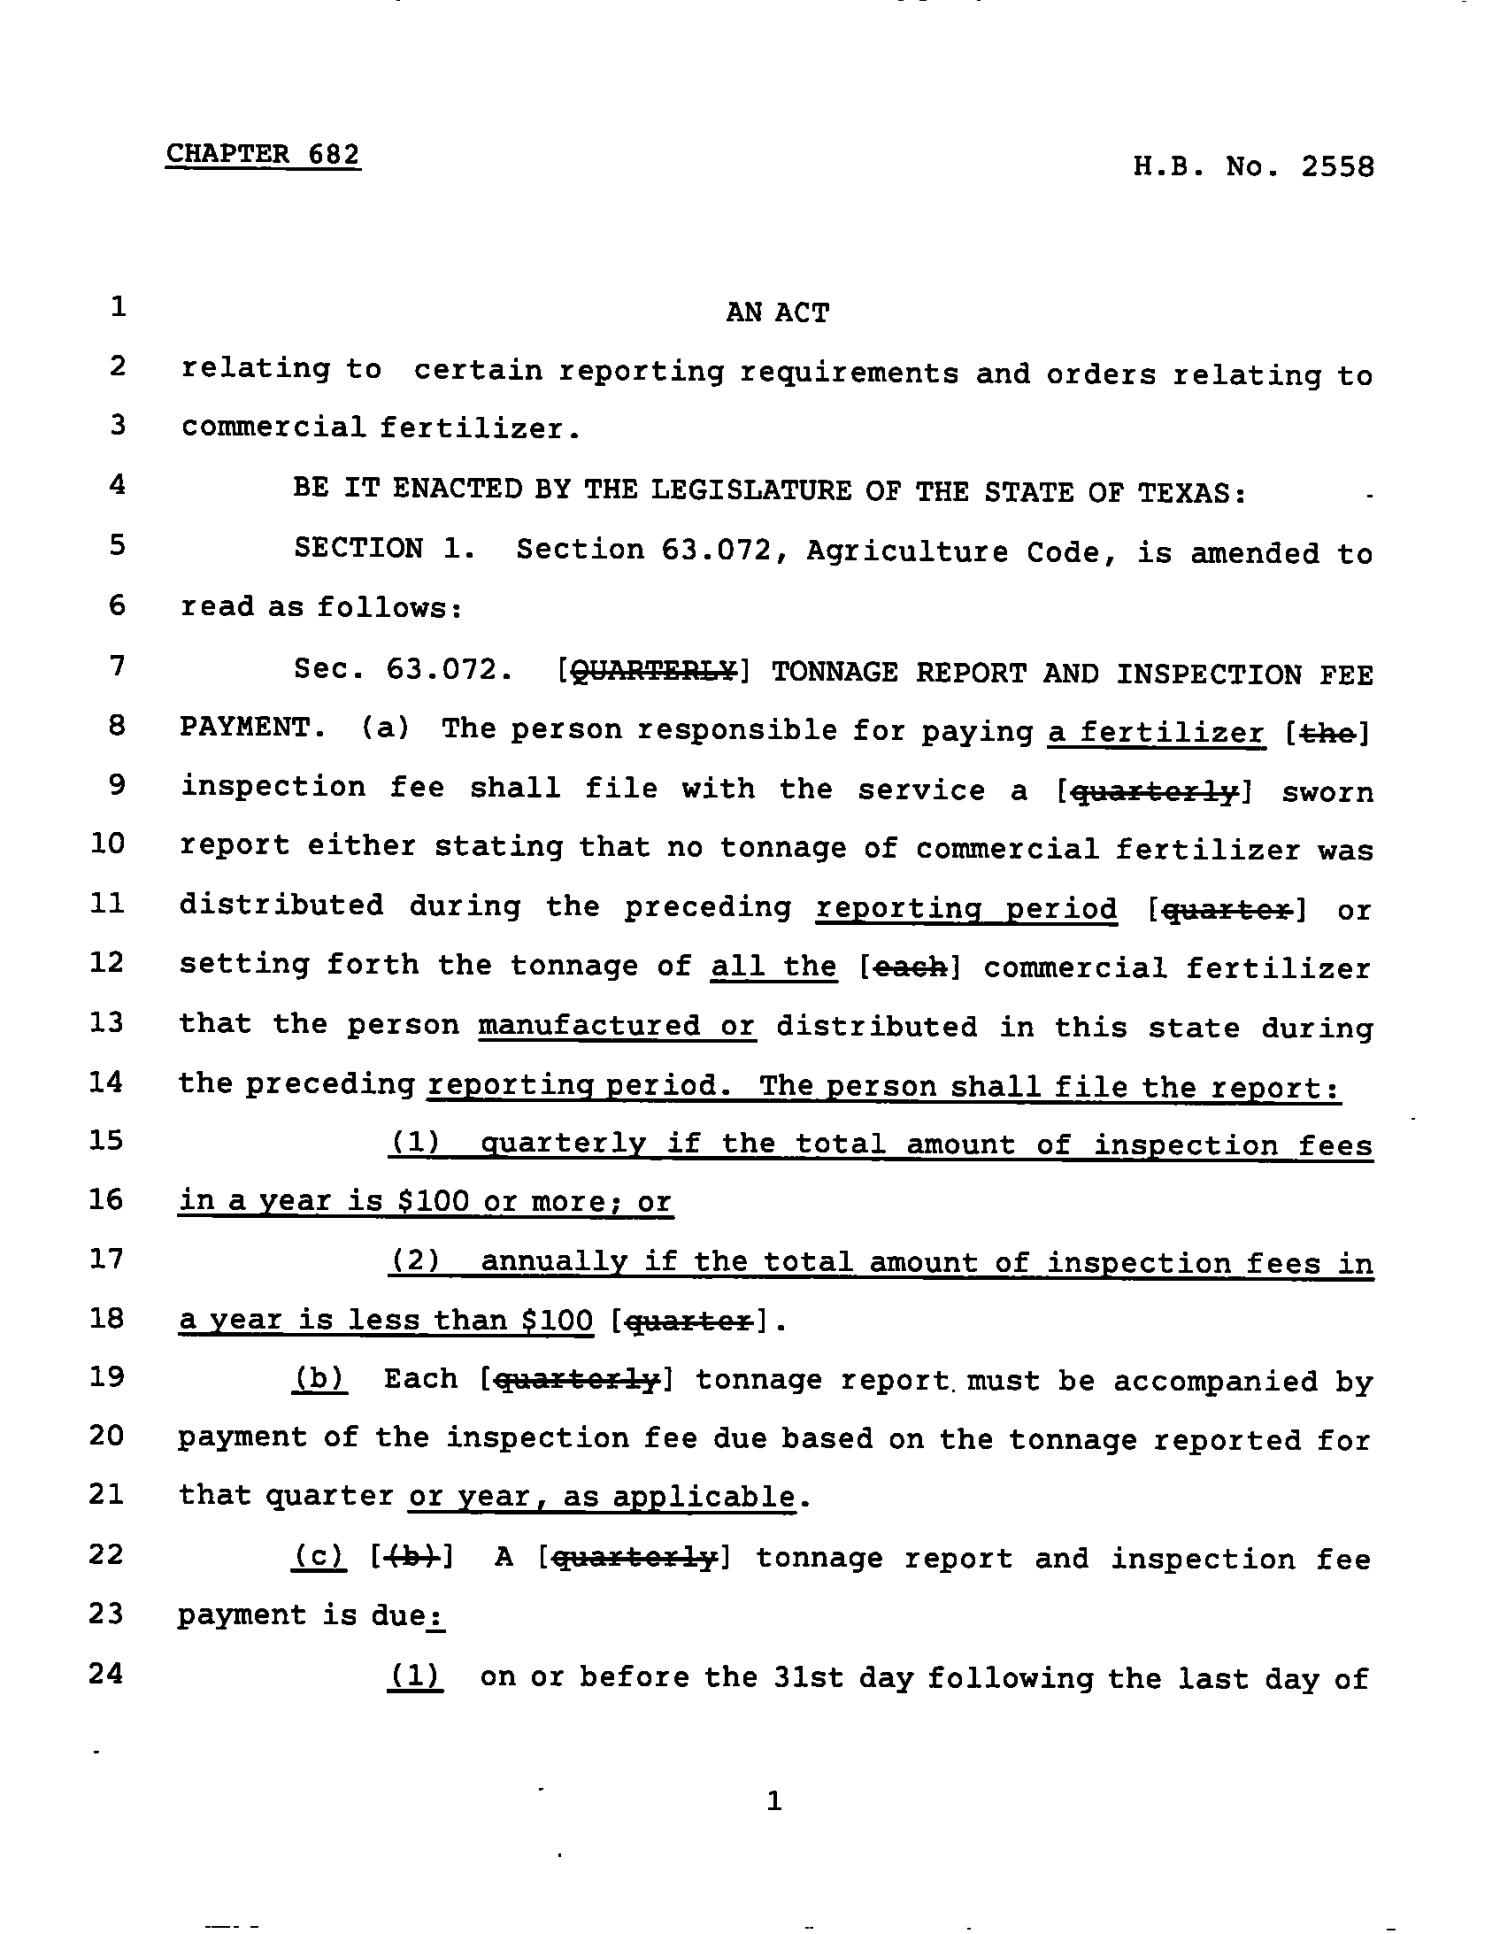 78th Texas Legislature, Regular Session, House Bill 2558, Chapter 682                                                                                                      [Sequence #]: 1 of 4